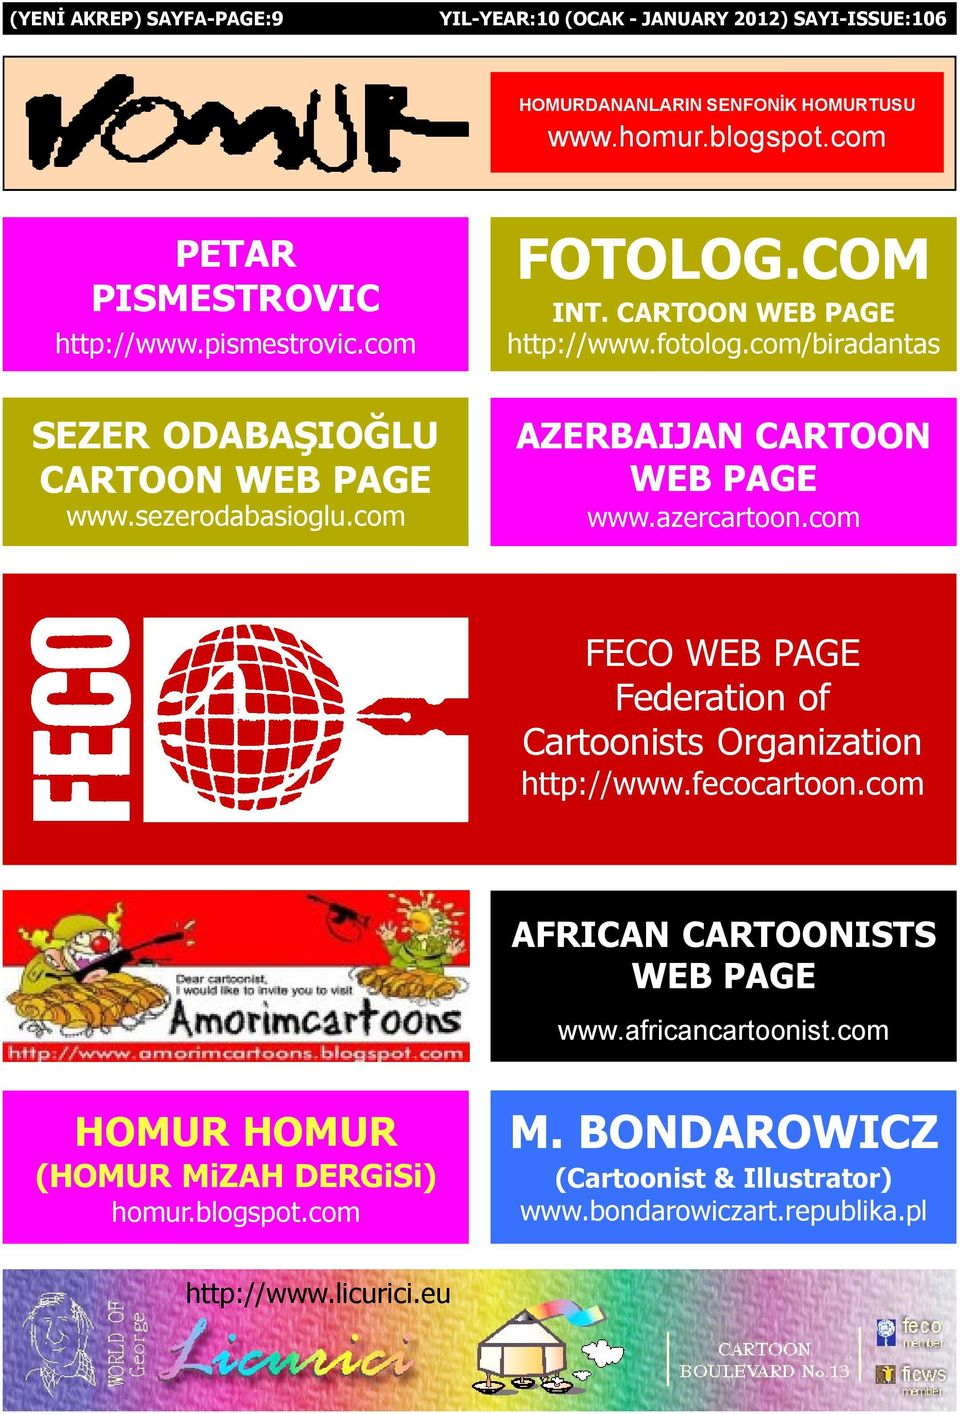 azercartoon.com FECO WEB PAGE Federation of Cartoonists Organization http://www.fecocartoon.com AFRICAN CARTOONISTS WEB PAGE www.africancartoonist.